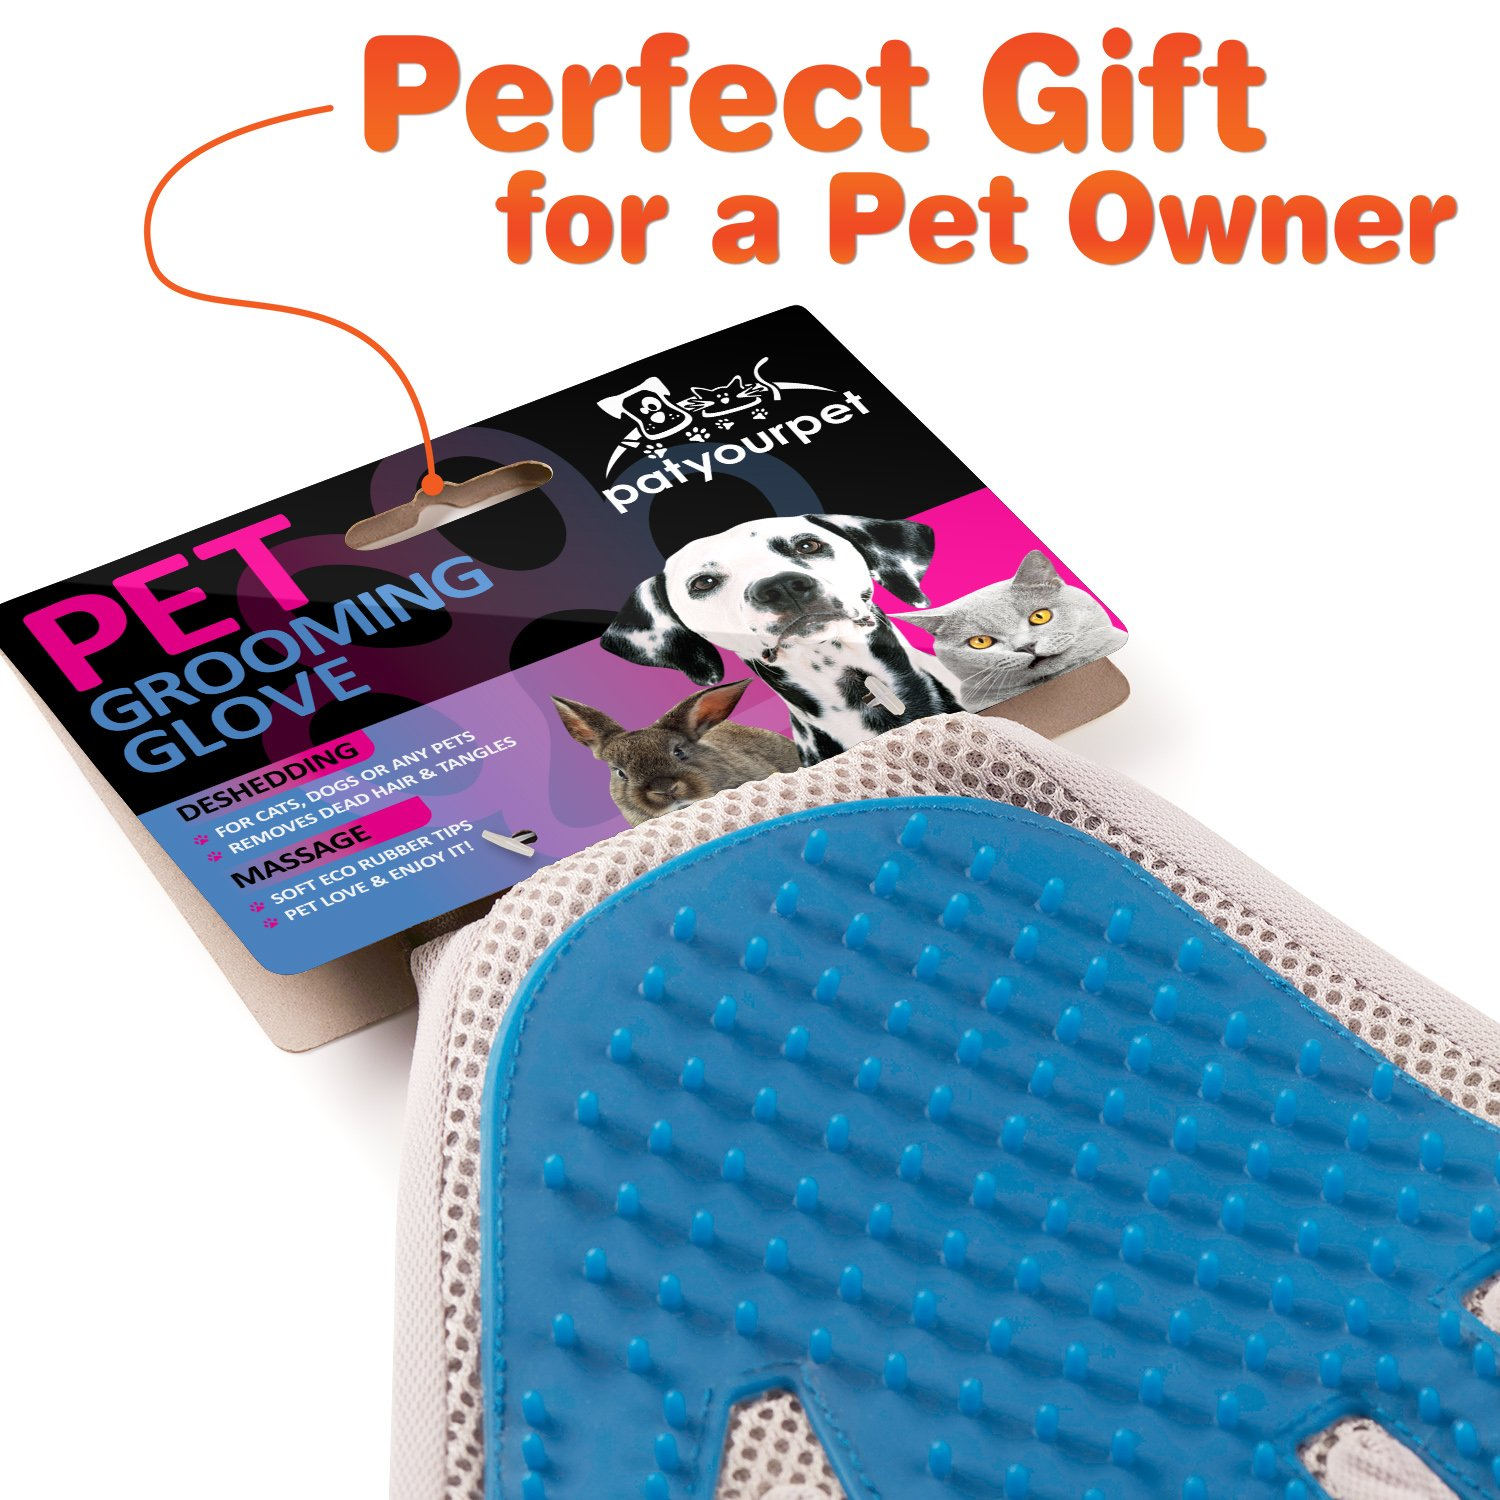 Pet Grooming Glove - Enhanced Five Finger Design - for Cats, Dogs & Horses - Long & Short Fur - Gentle De-Shedding Brush - Your Pet Will Love It (Right) by Pat Your Pet (Image #2)